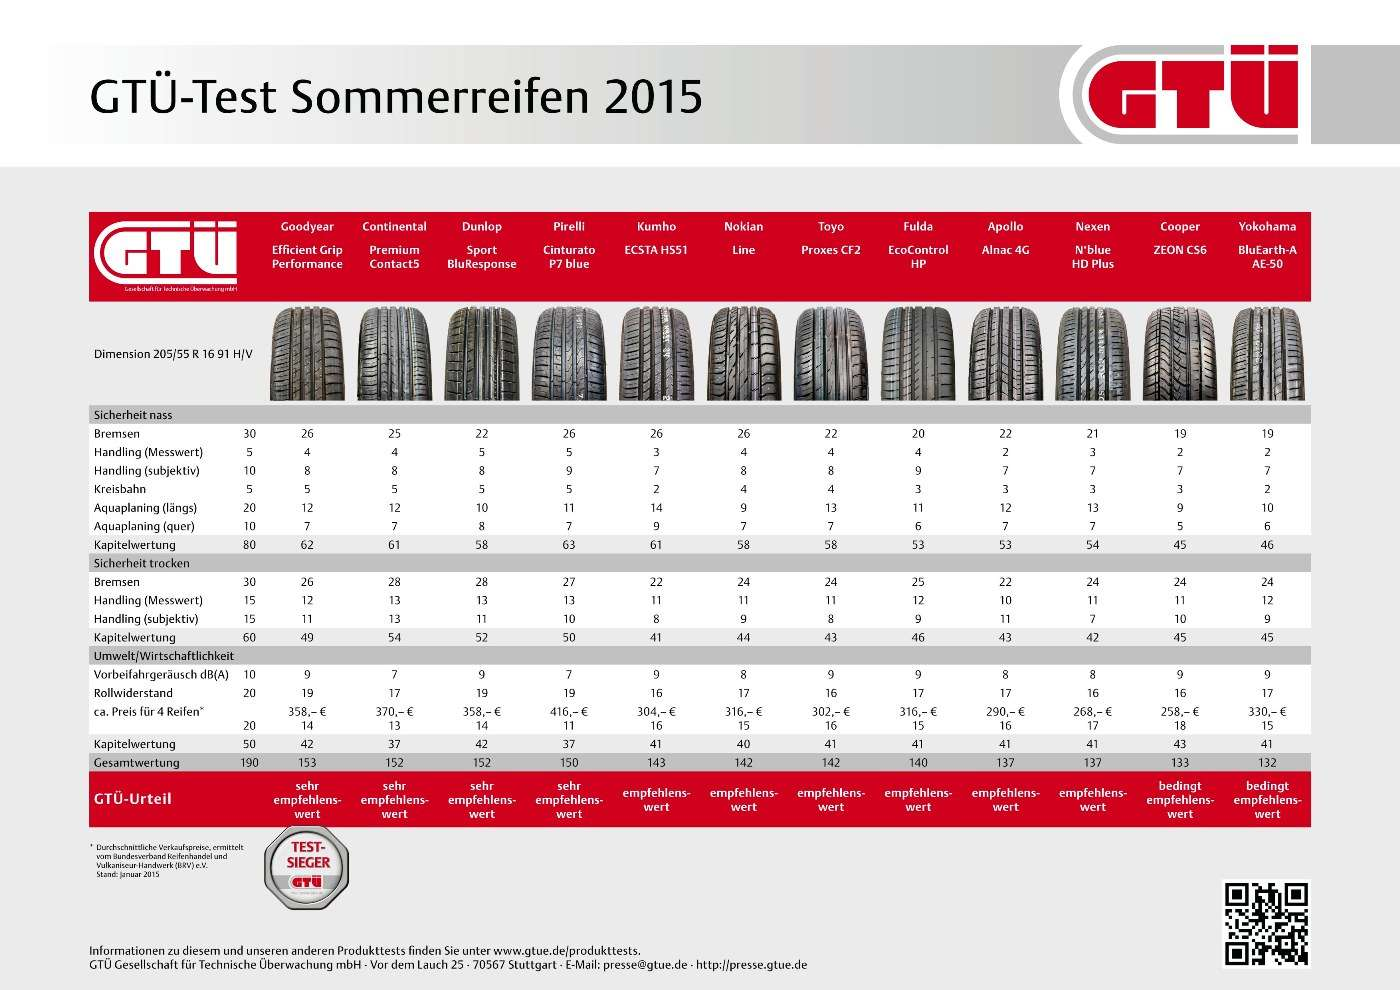 gt sommerreifen test 2015 sommerreifen werden immer. Black Bedroom Furniture Sets. Home Design Ideas